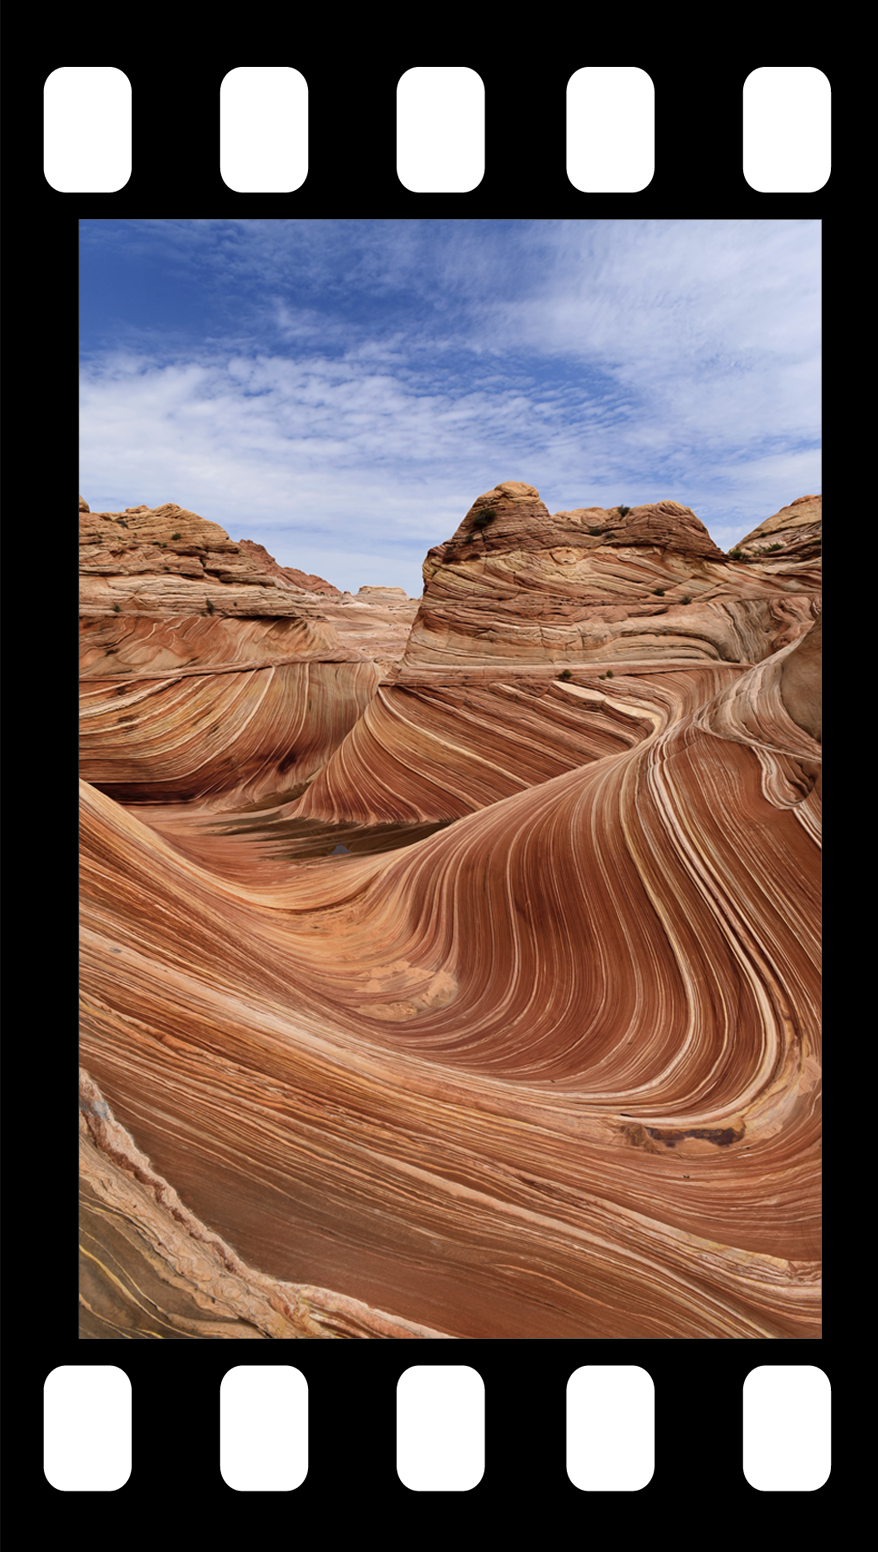 vermillion cliffs monument scenery